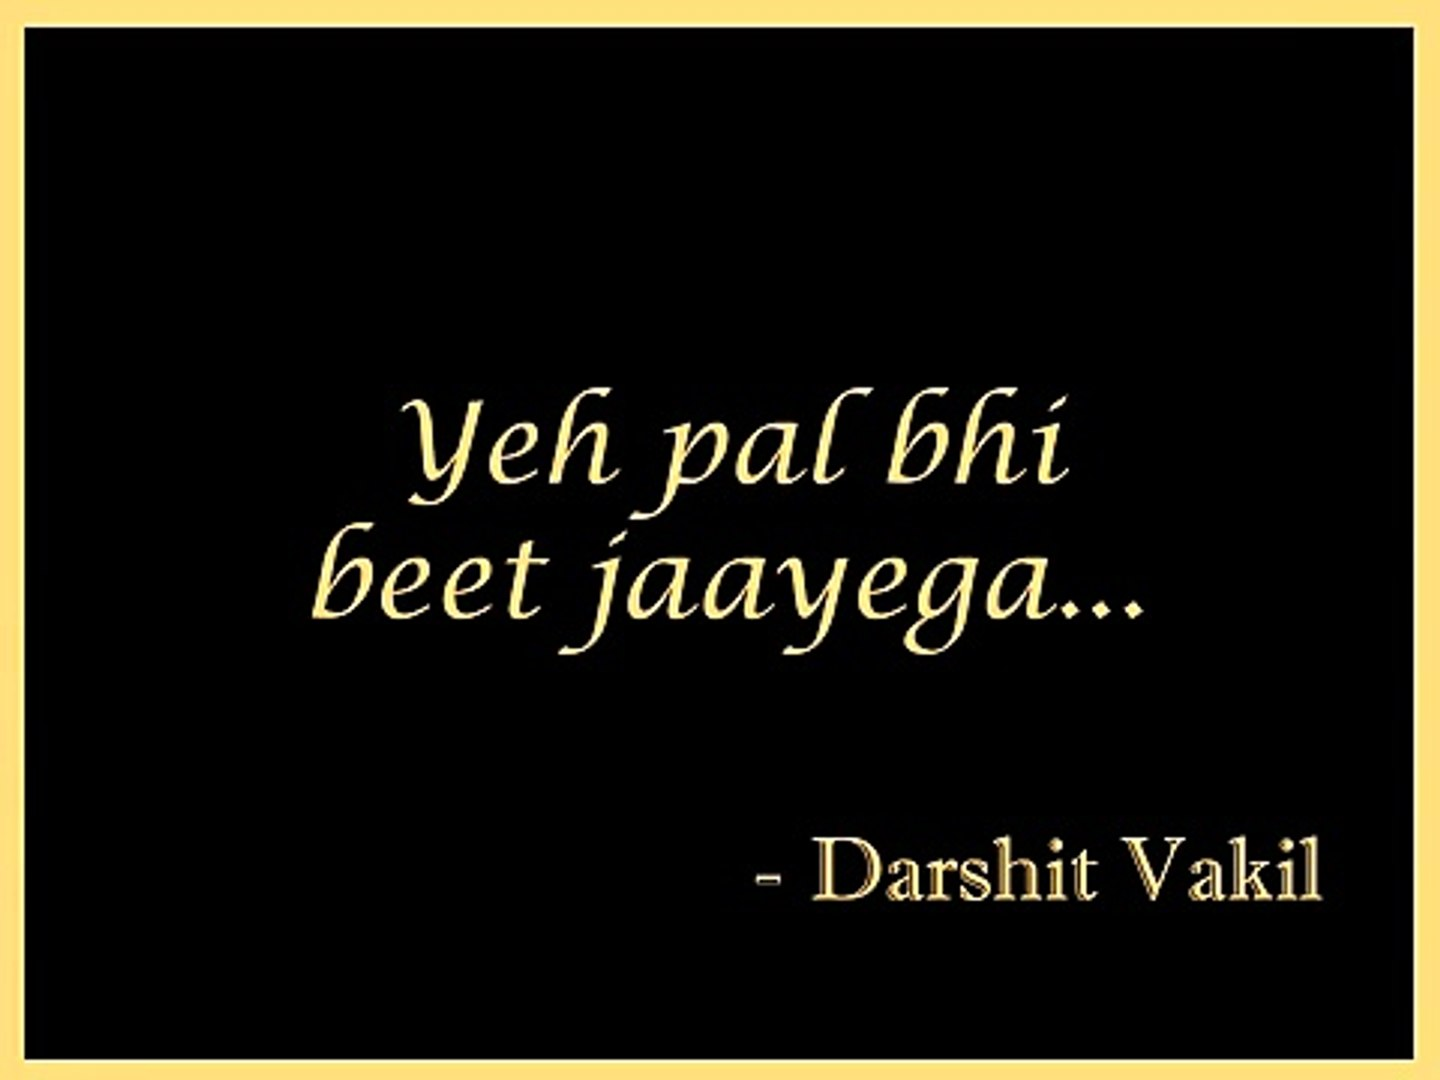 Inspirational Hindi Poem _12 - Yeh pal bhi beet ja